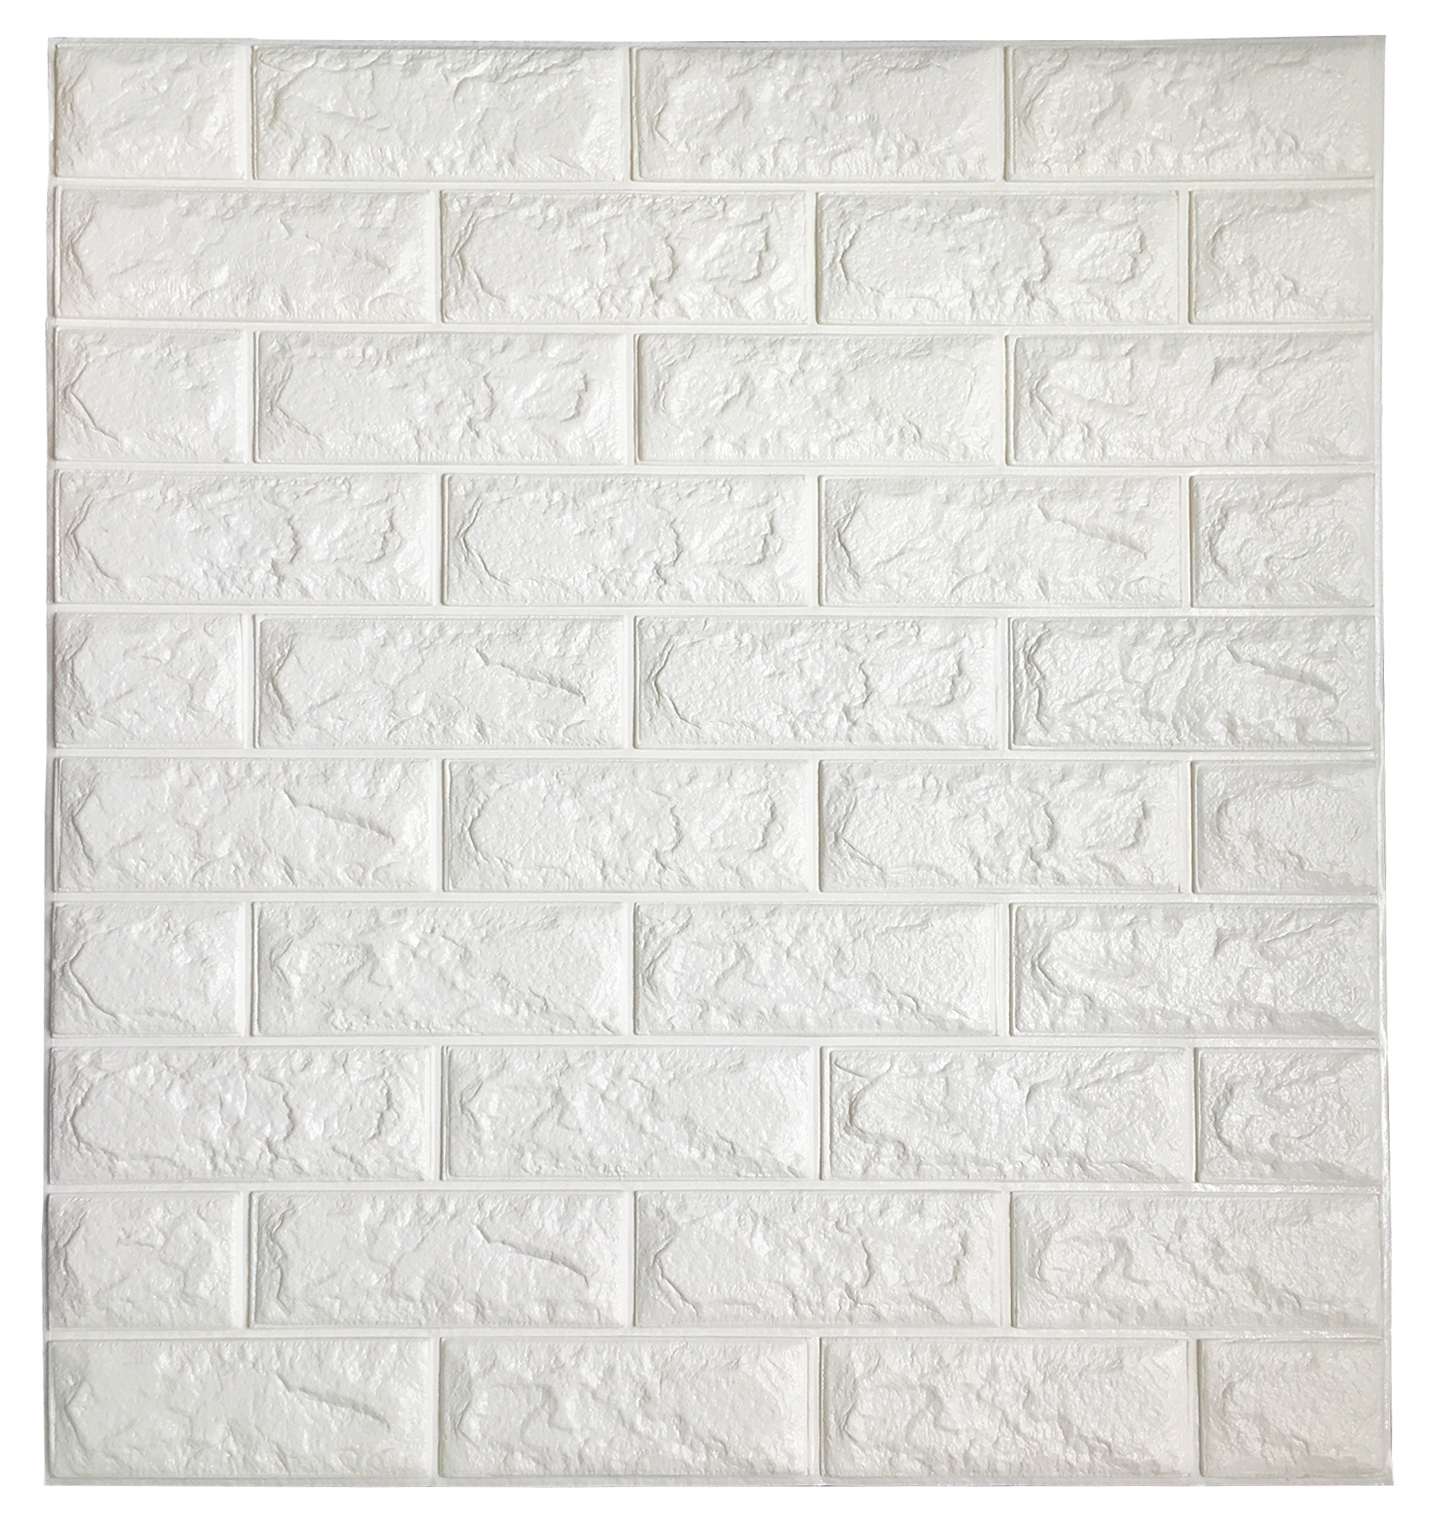 3d Brick Wall Art Pertaining To Popular Peel & Stick 3d Wall Panels White 3d Brick Wallpaper, 2.6' X (View 4 of 15)